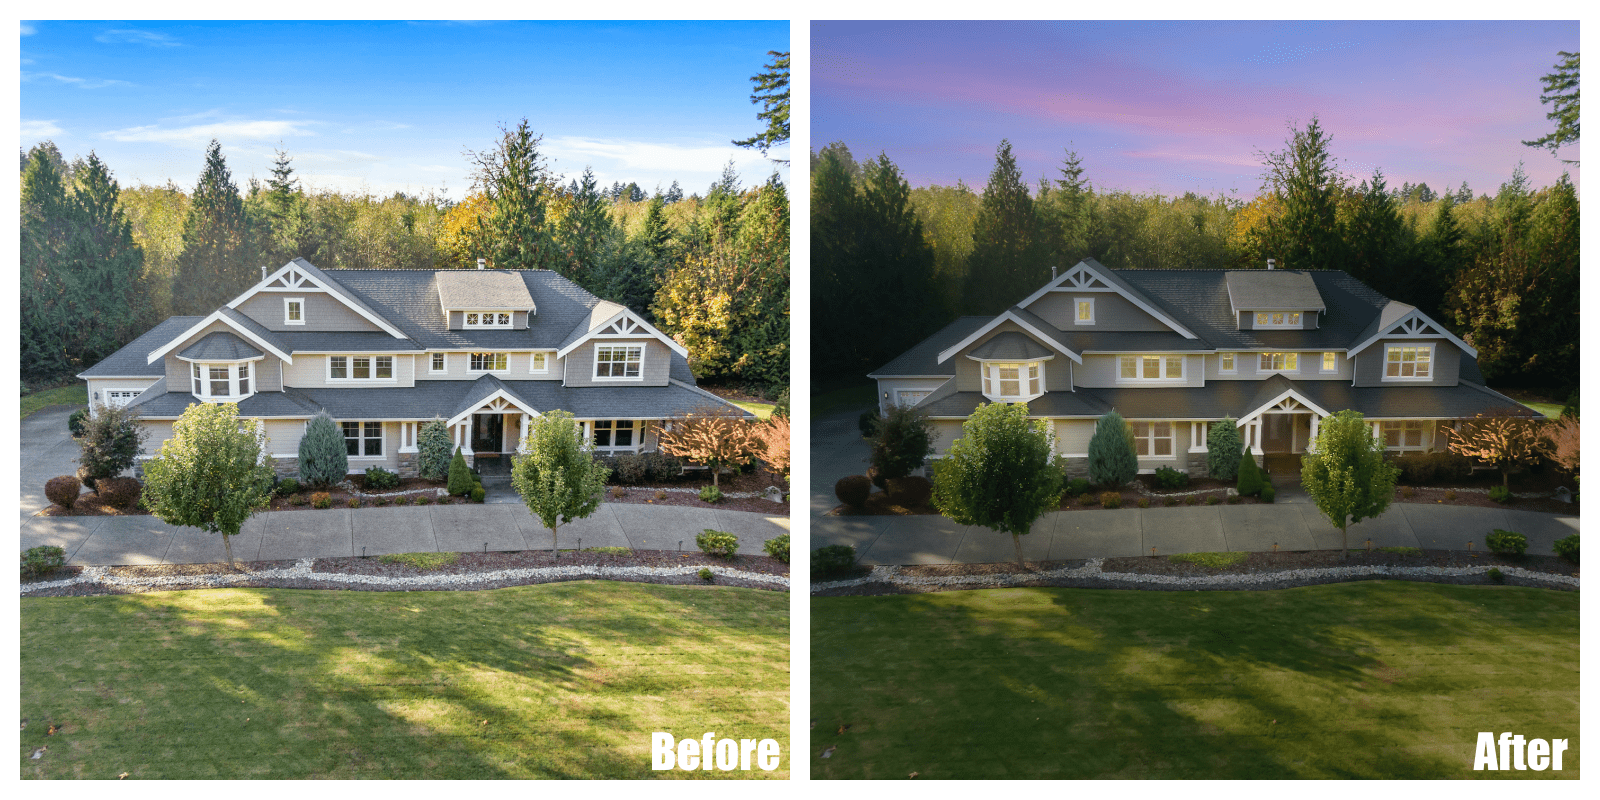 What are Top 5 Fascinating Facts About Real Estate Twilight Photo Editing?